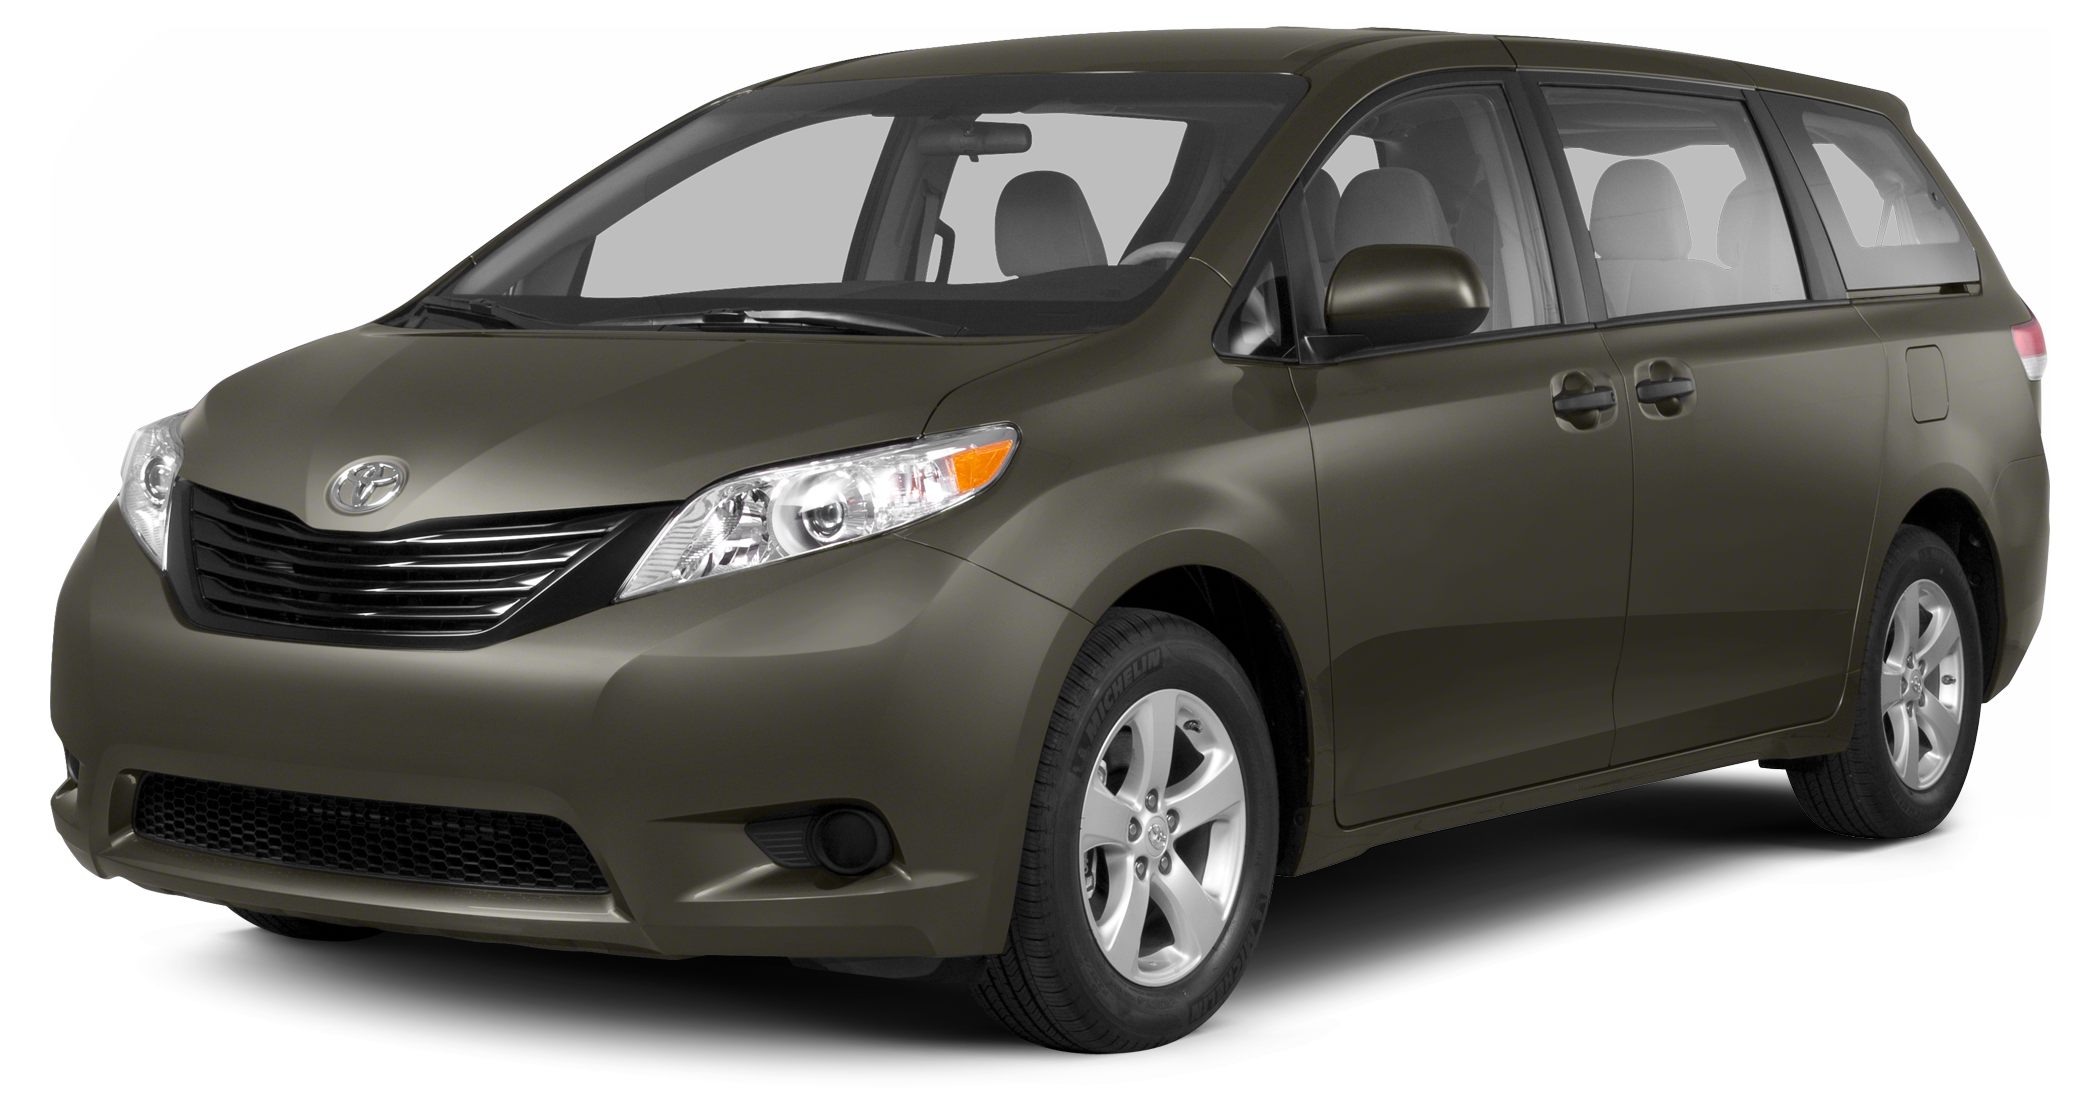 2013 Toyota Sienna XLE 8 Passenger CARFAX 1-Owner ONLY 20872 Miles XLE trim FUEL EFFICIENT 25